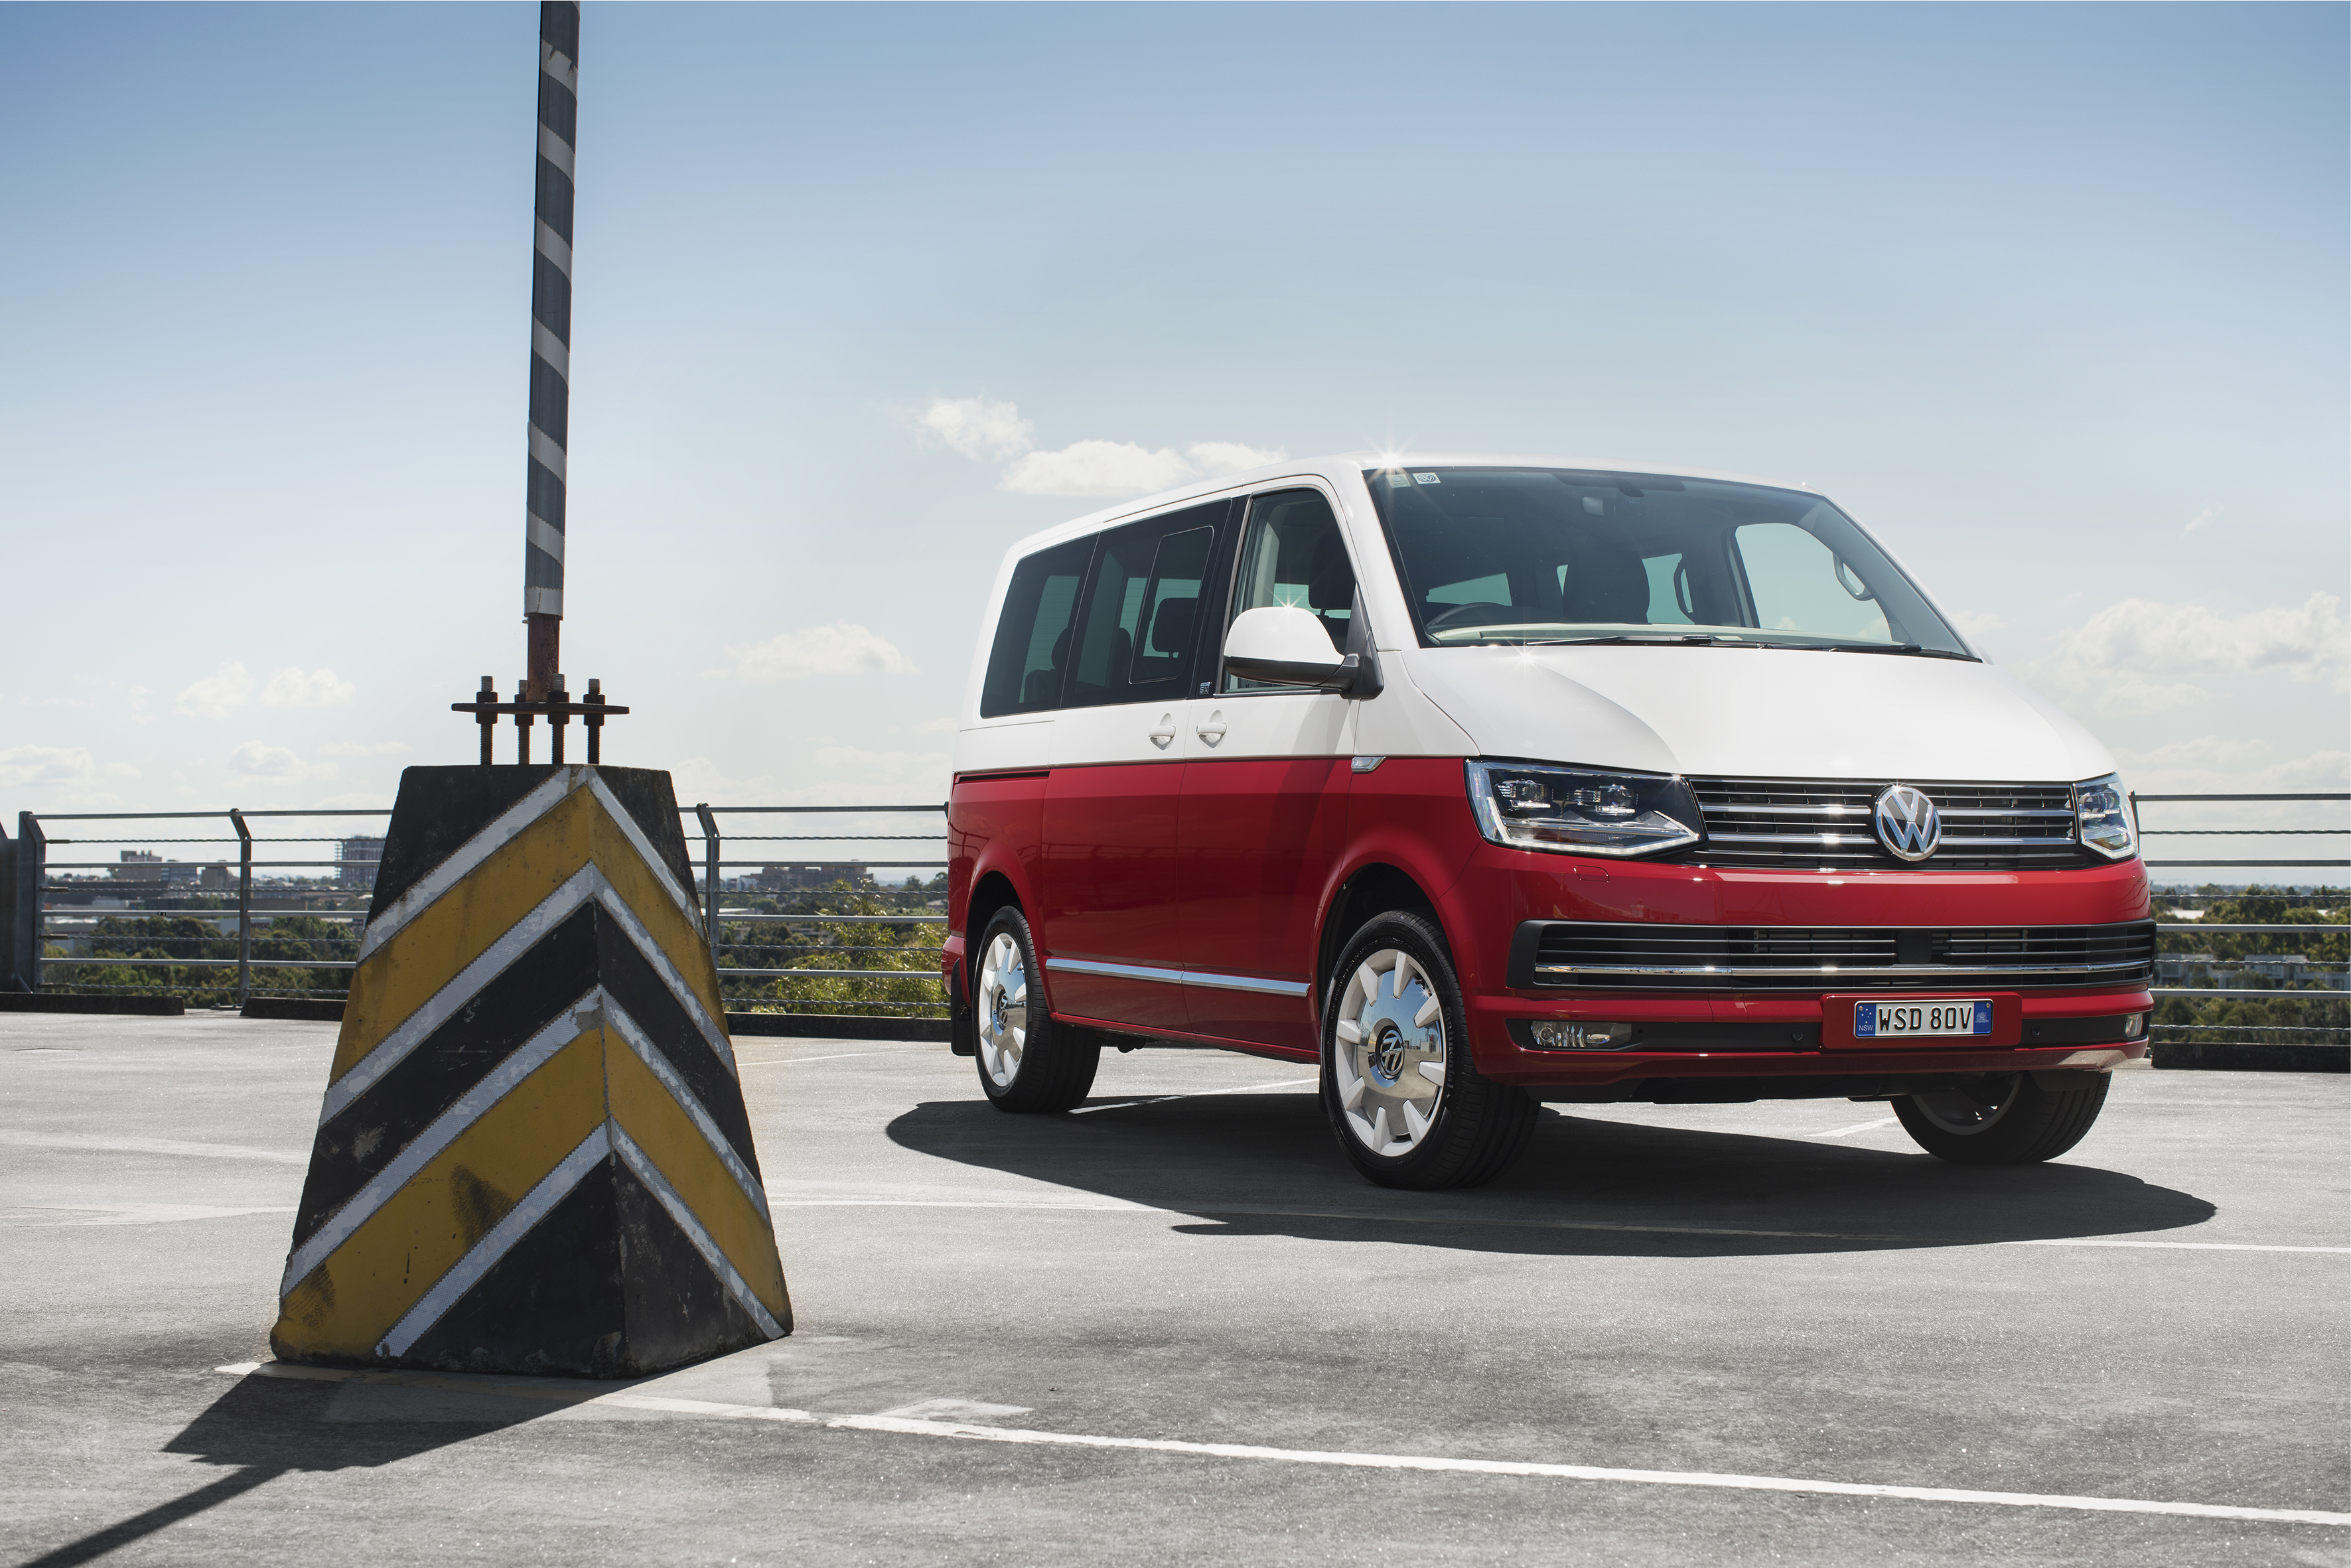 2016 Volkswagen Multivan And Caravelle People Movers